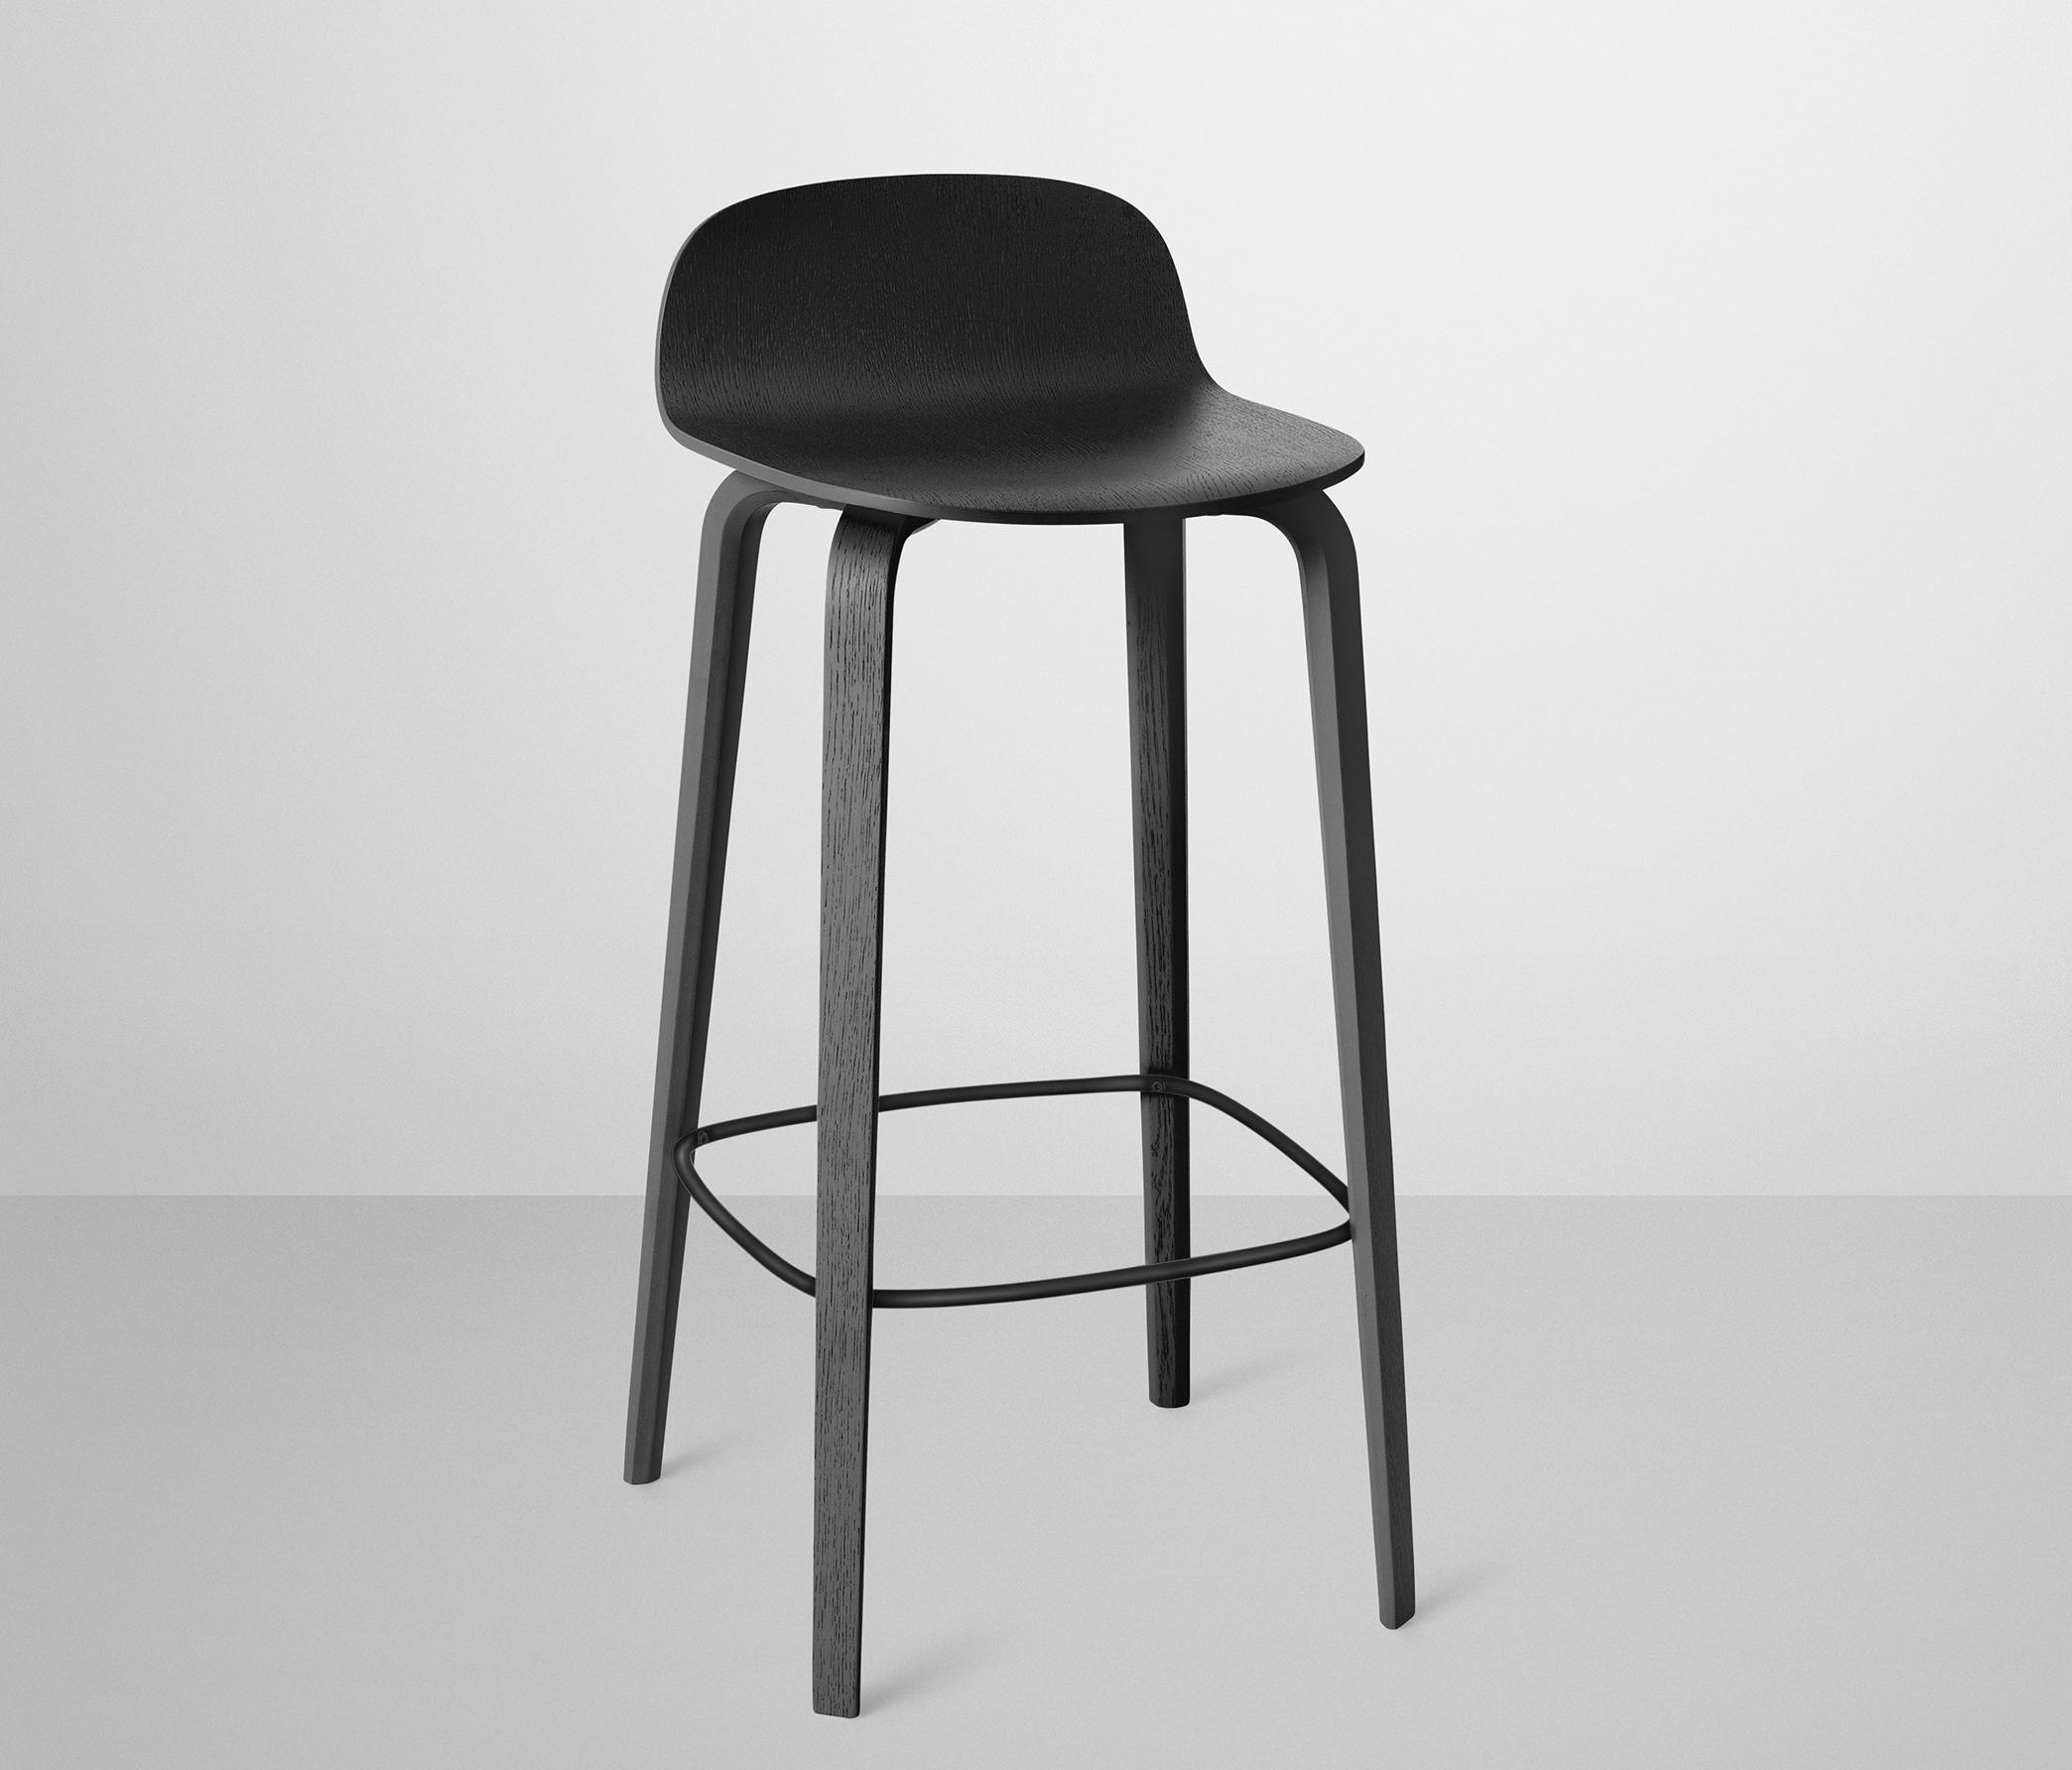 VISU BAR STOOL HIGH Bar stools from Muuto